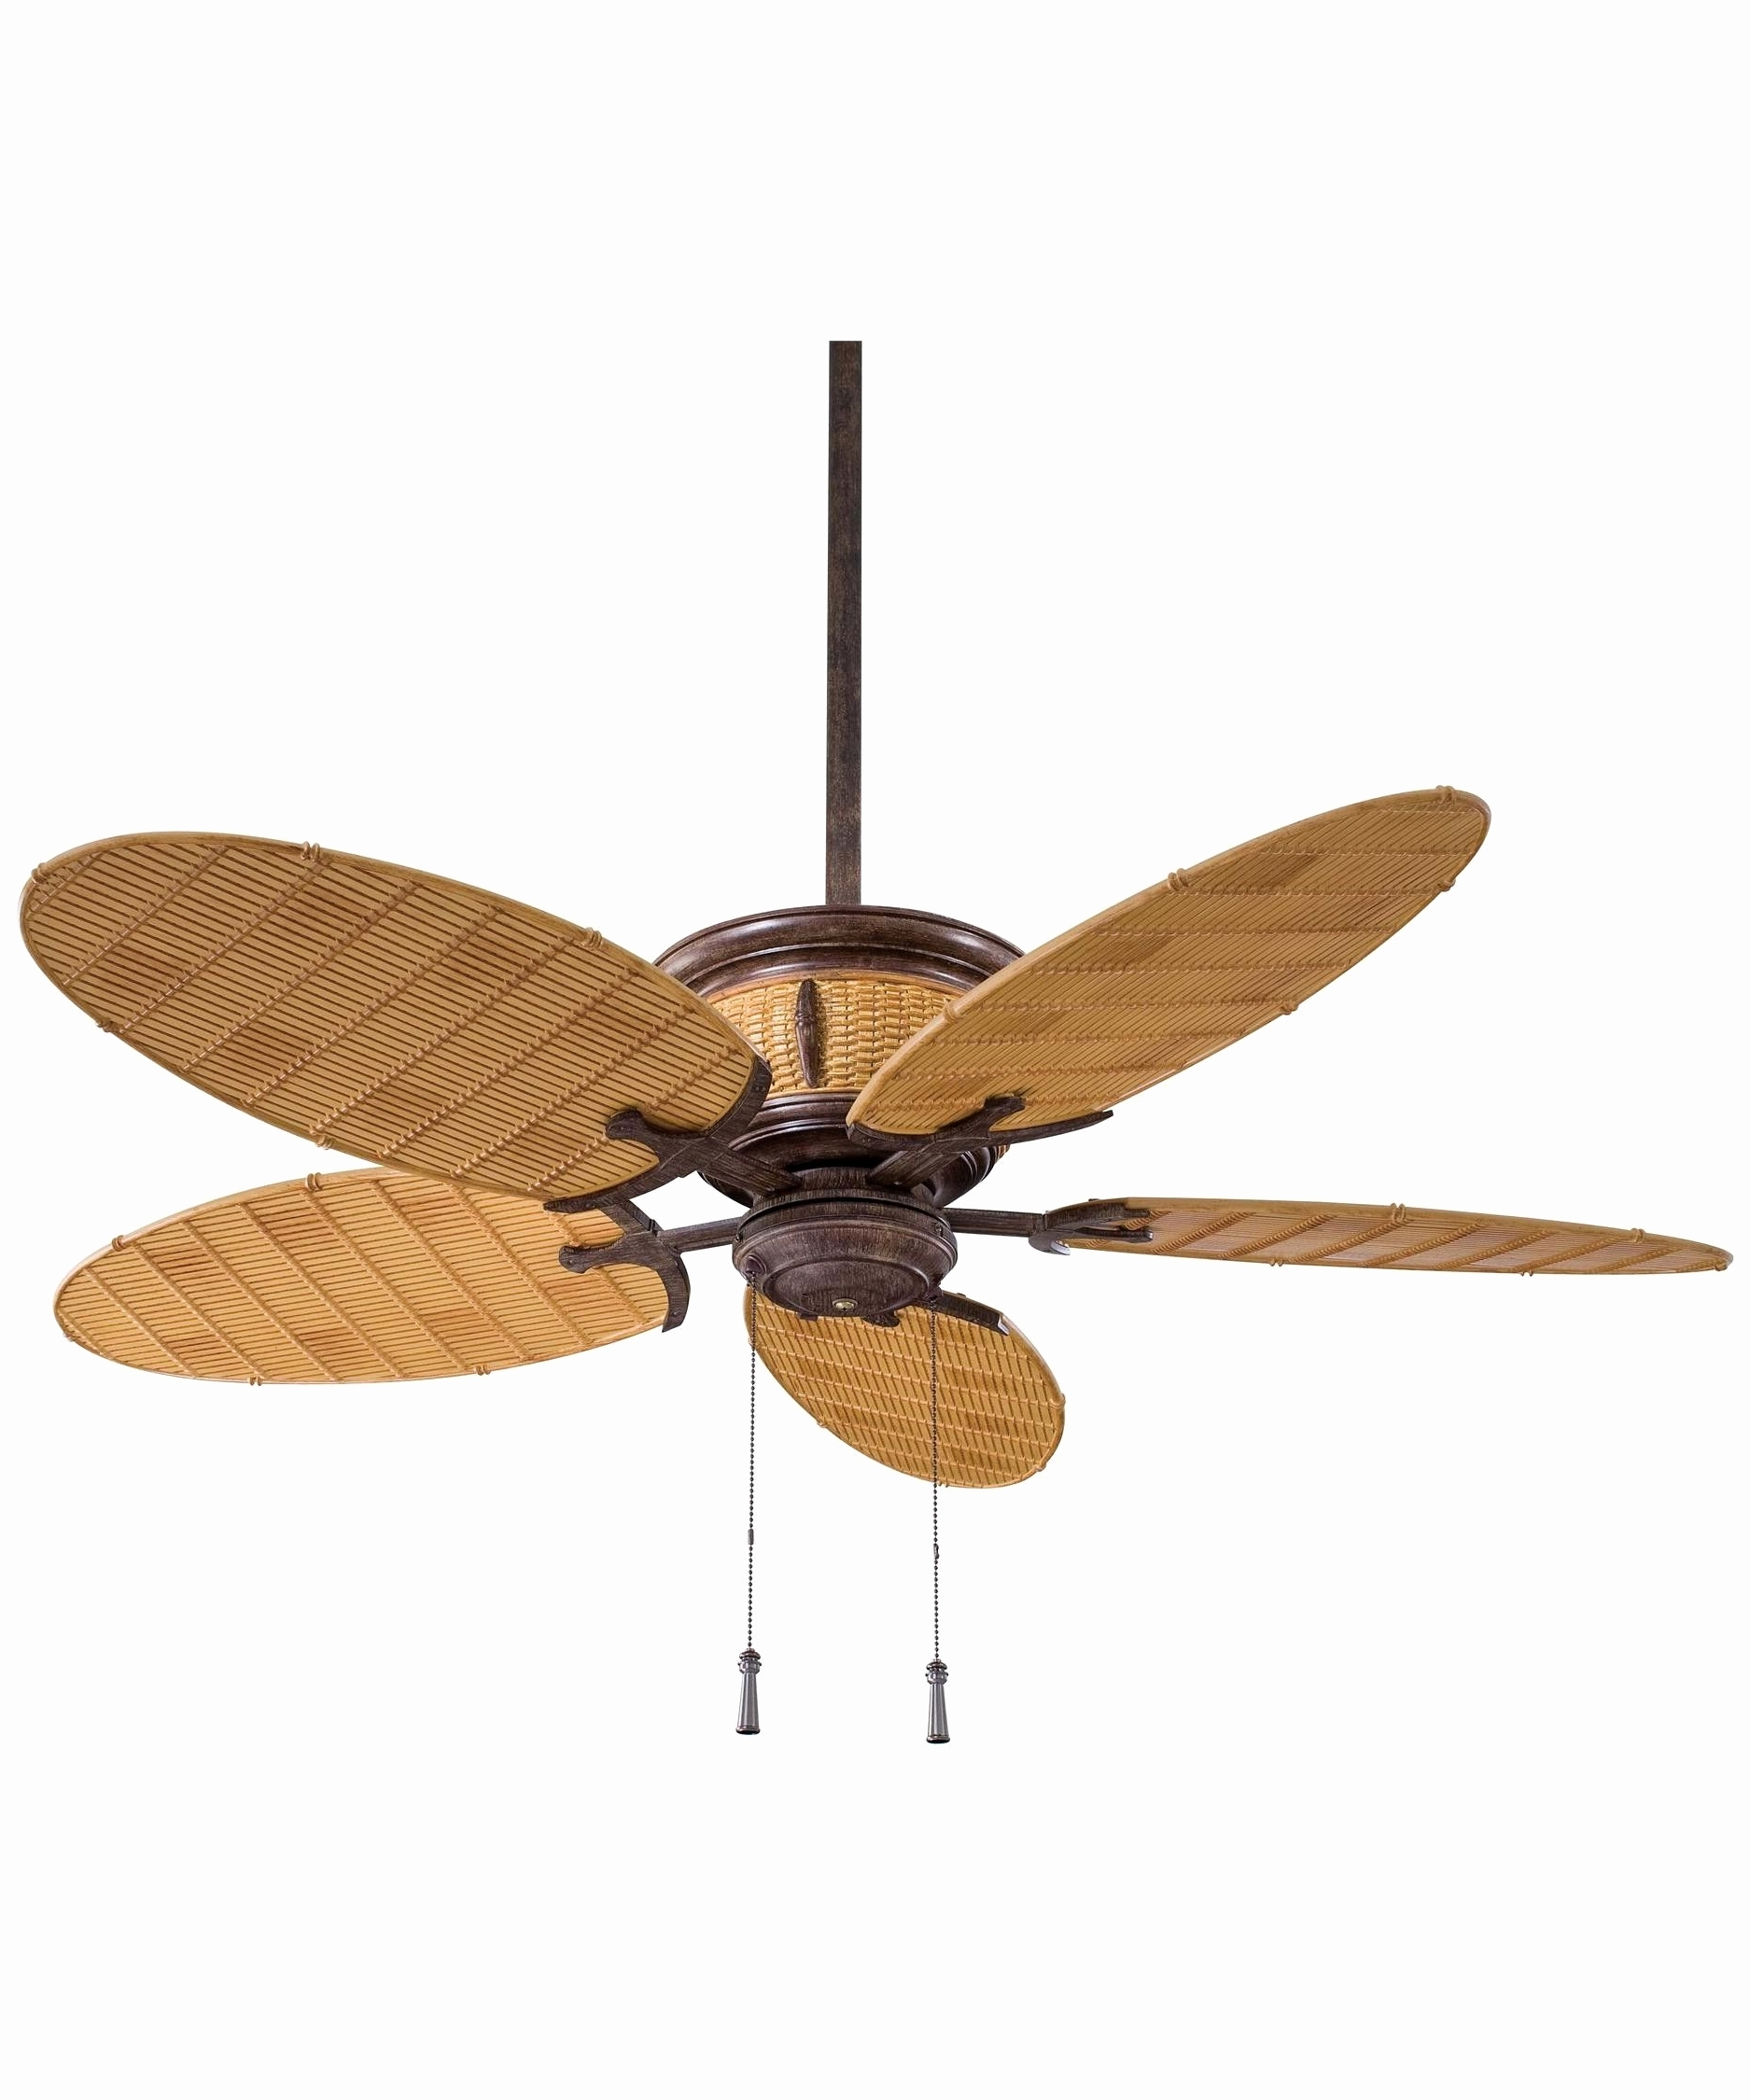 Outdoor Ceiling Fans For Gazebo Throughout Best And Newest Outdoor Ceiling Fan For Gazebo Lovely Great Outdoor Fan Home Depot (View 14 of 20)